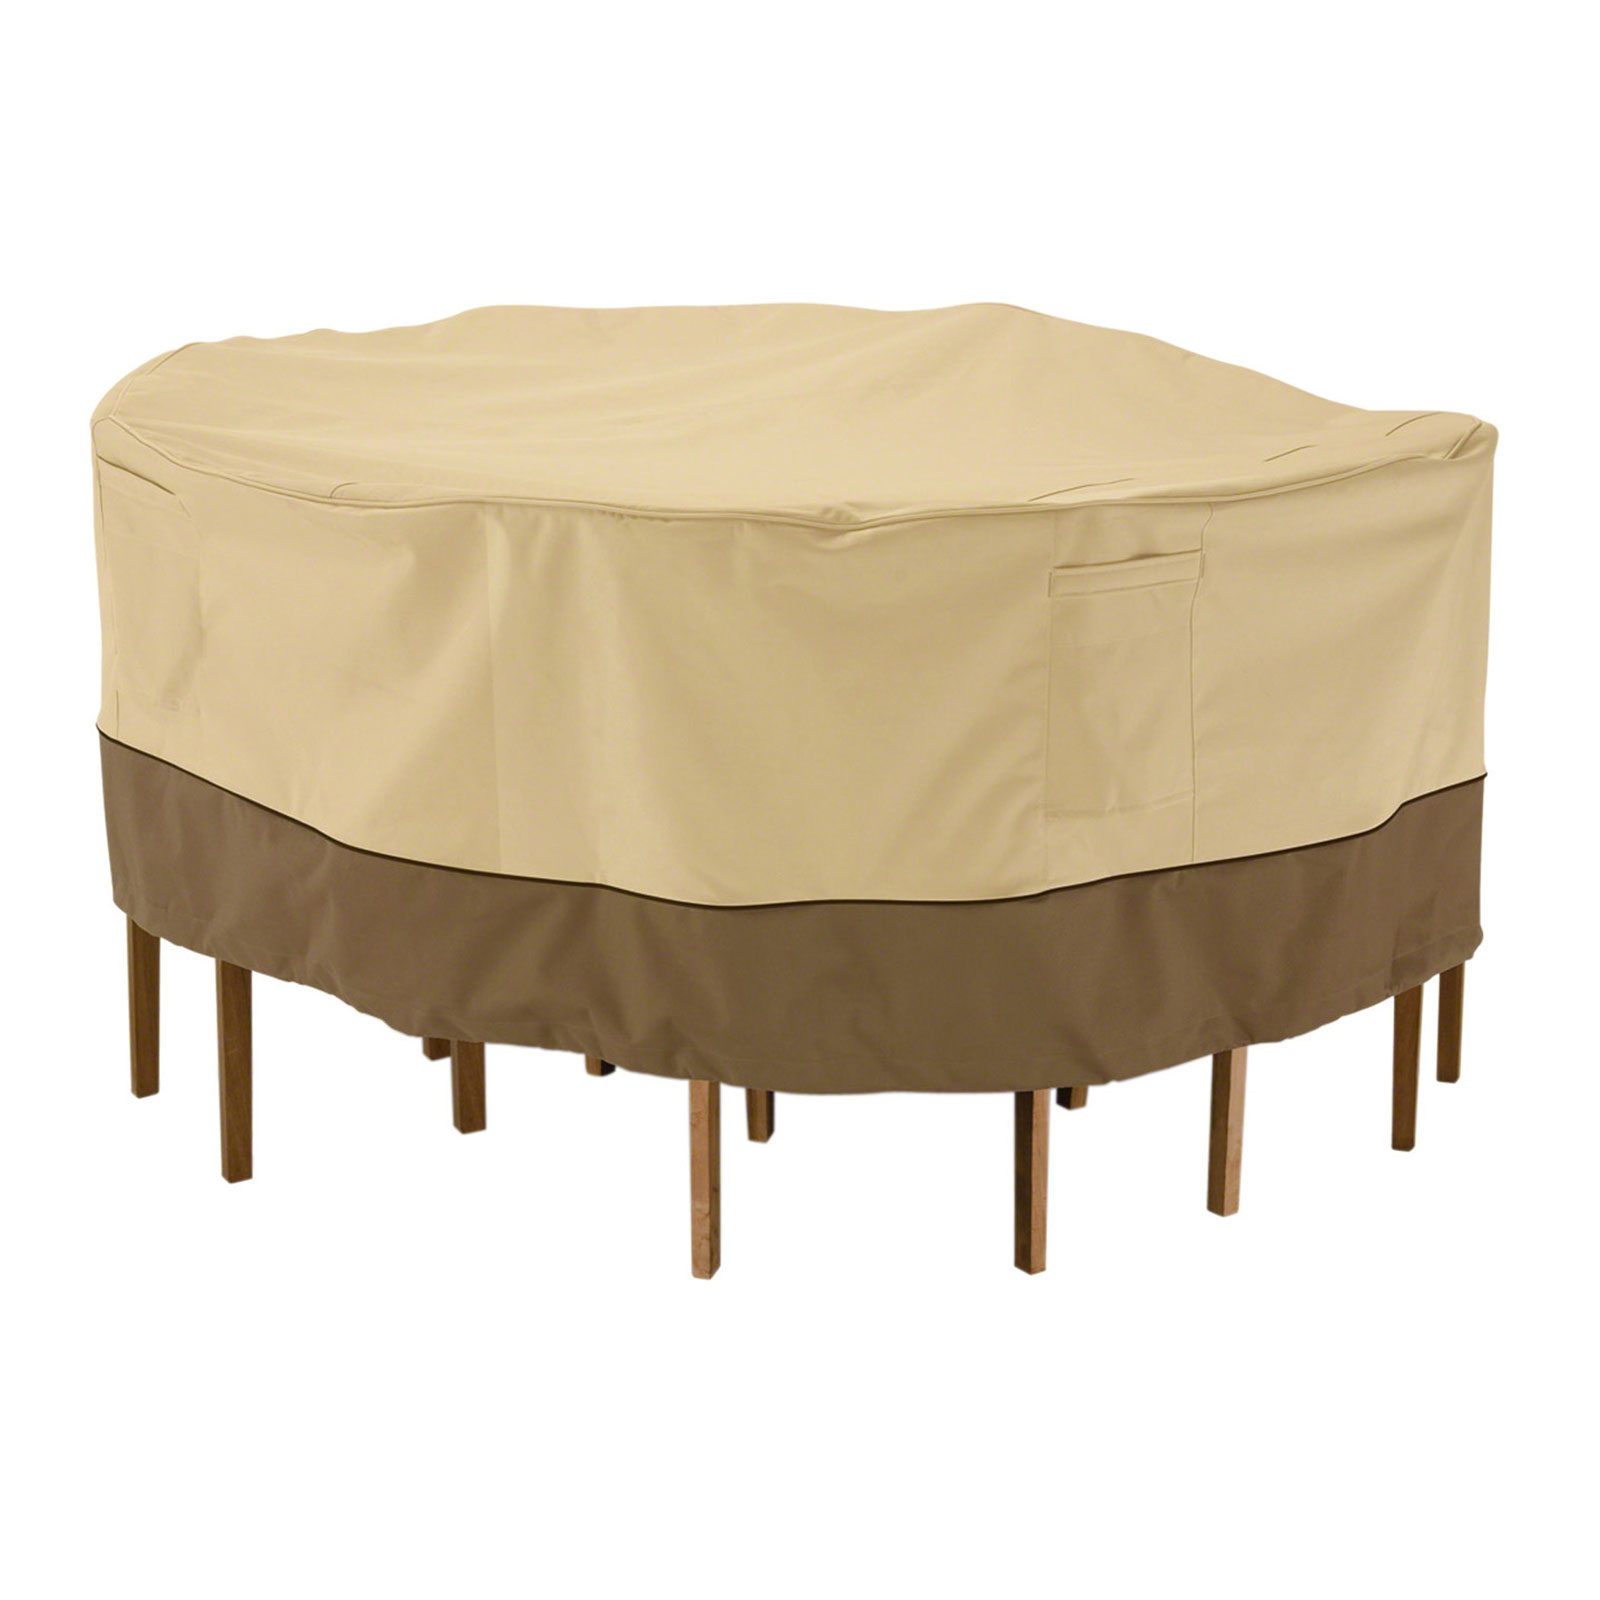 Patio Chair Cover Patio Table Cover Round Veranda In Patio Furniture Covers